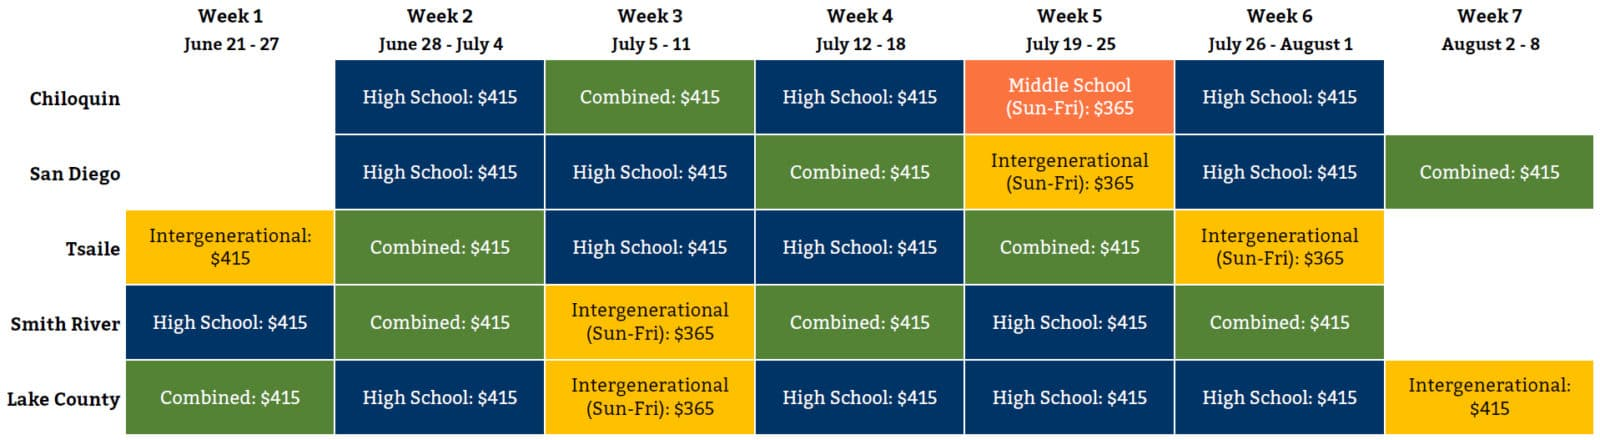 Program Schedule Fee